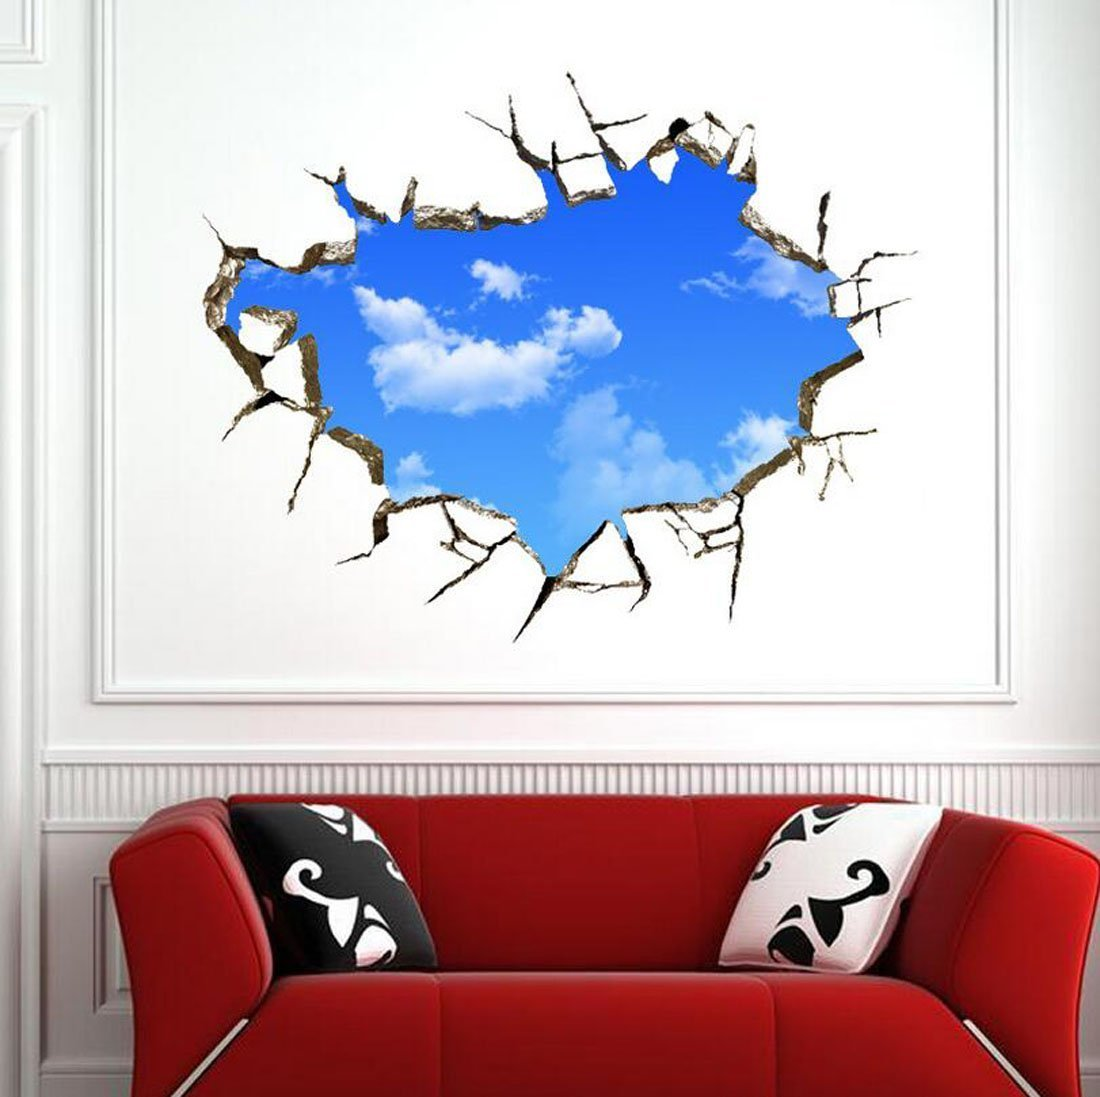 Amazon.com: Blue Sky 3D Wall Stickers For Ceiling Real Feeling Suit For Bedroom  Living Room Nursery Kids Room Wall Decoration: Home U0026 Kitchen Part 96